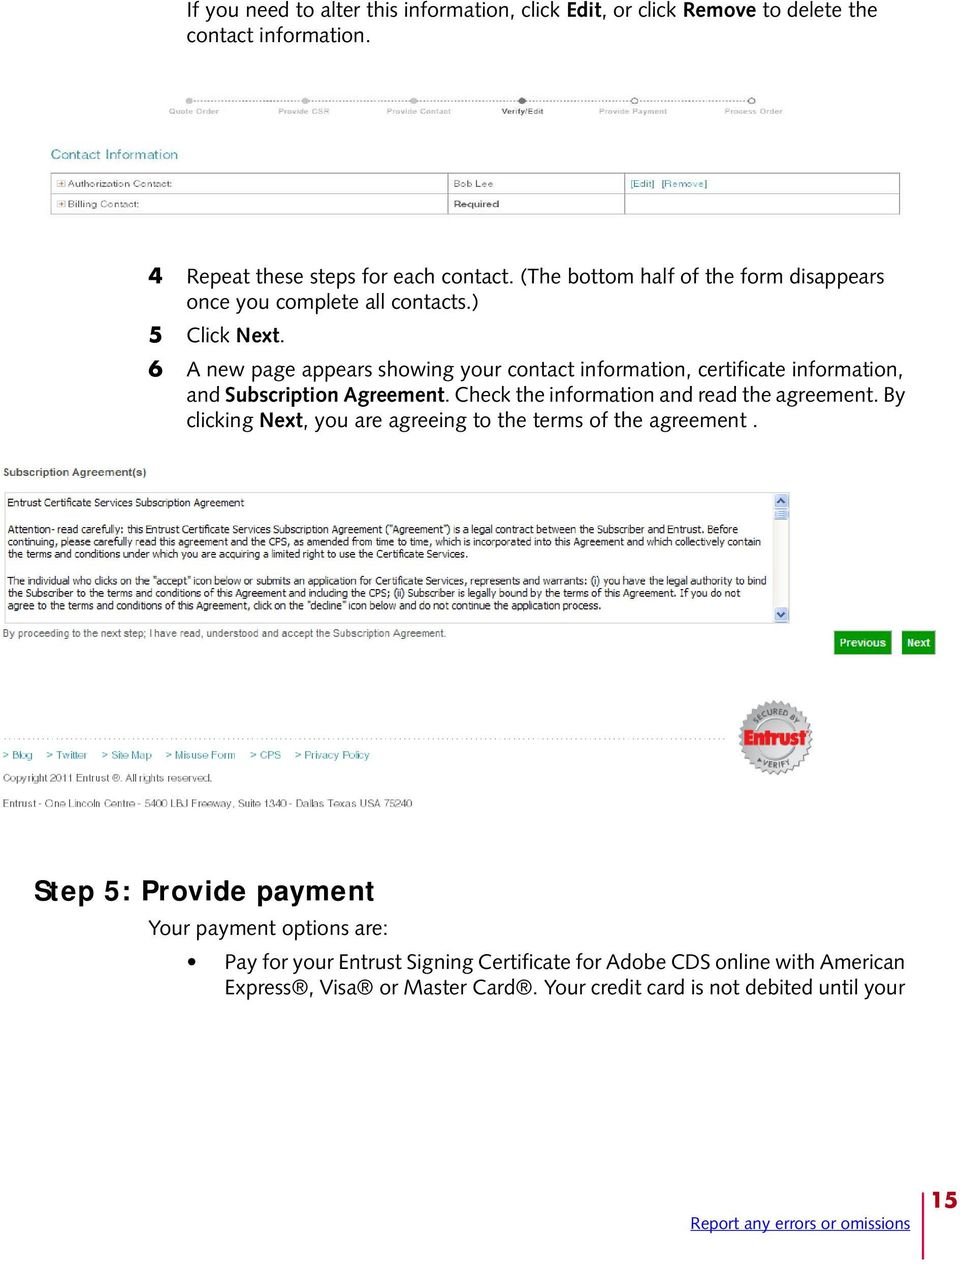 6 A new page appears showing your contact information, certificate information, and Subscription Agreement. Check the information and read the agreement.